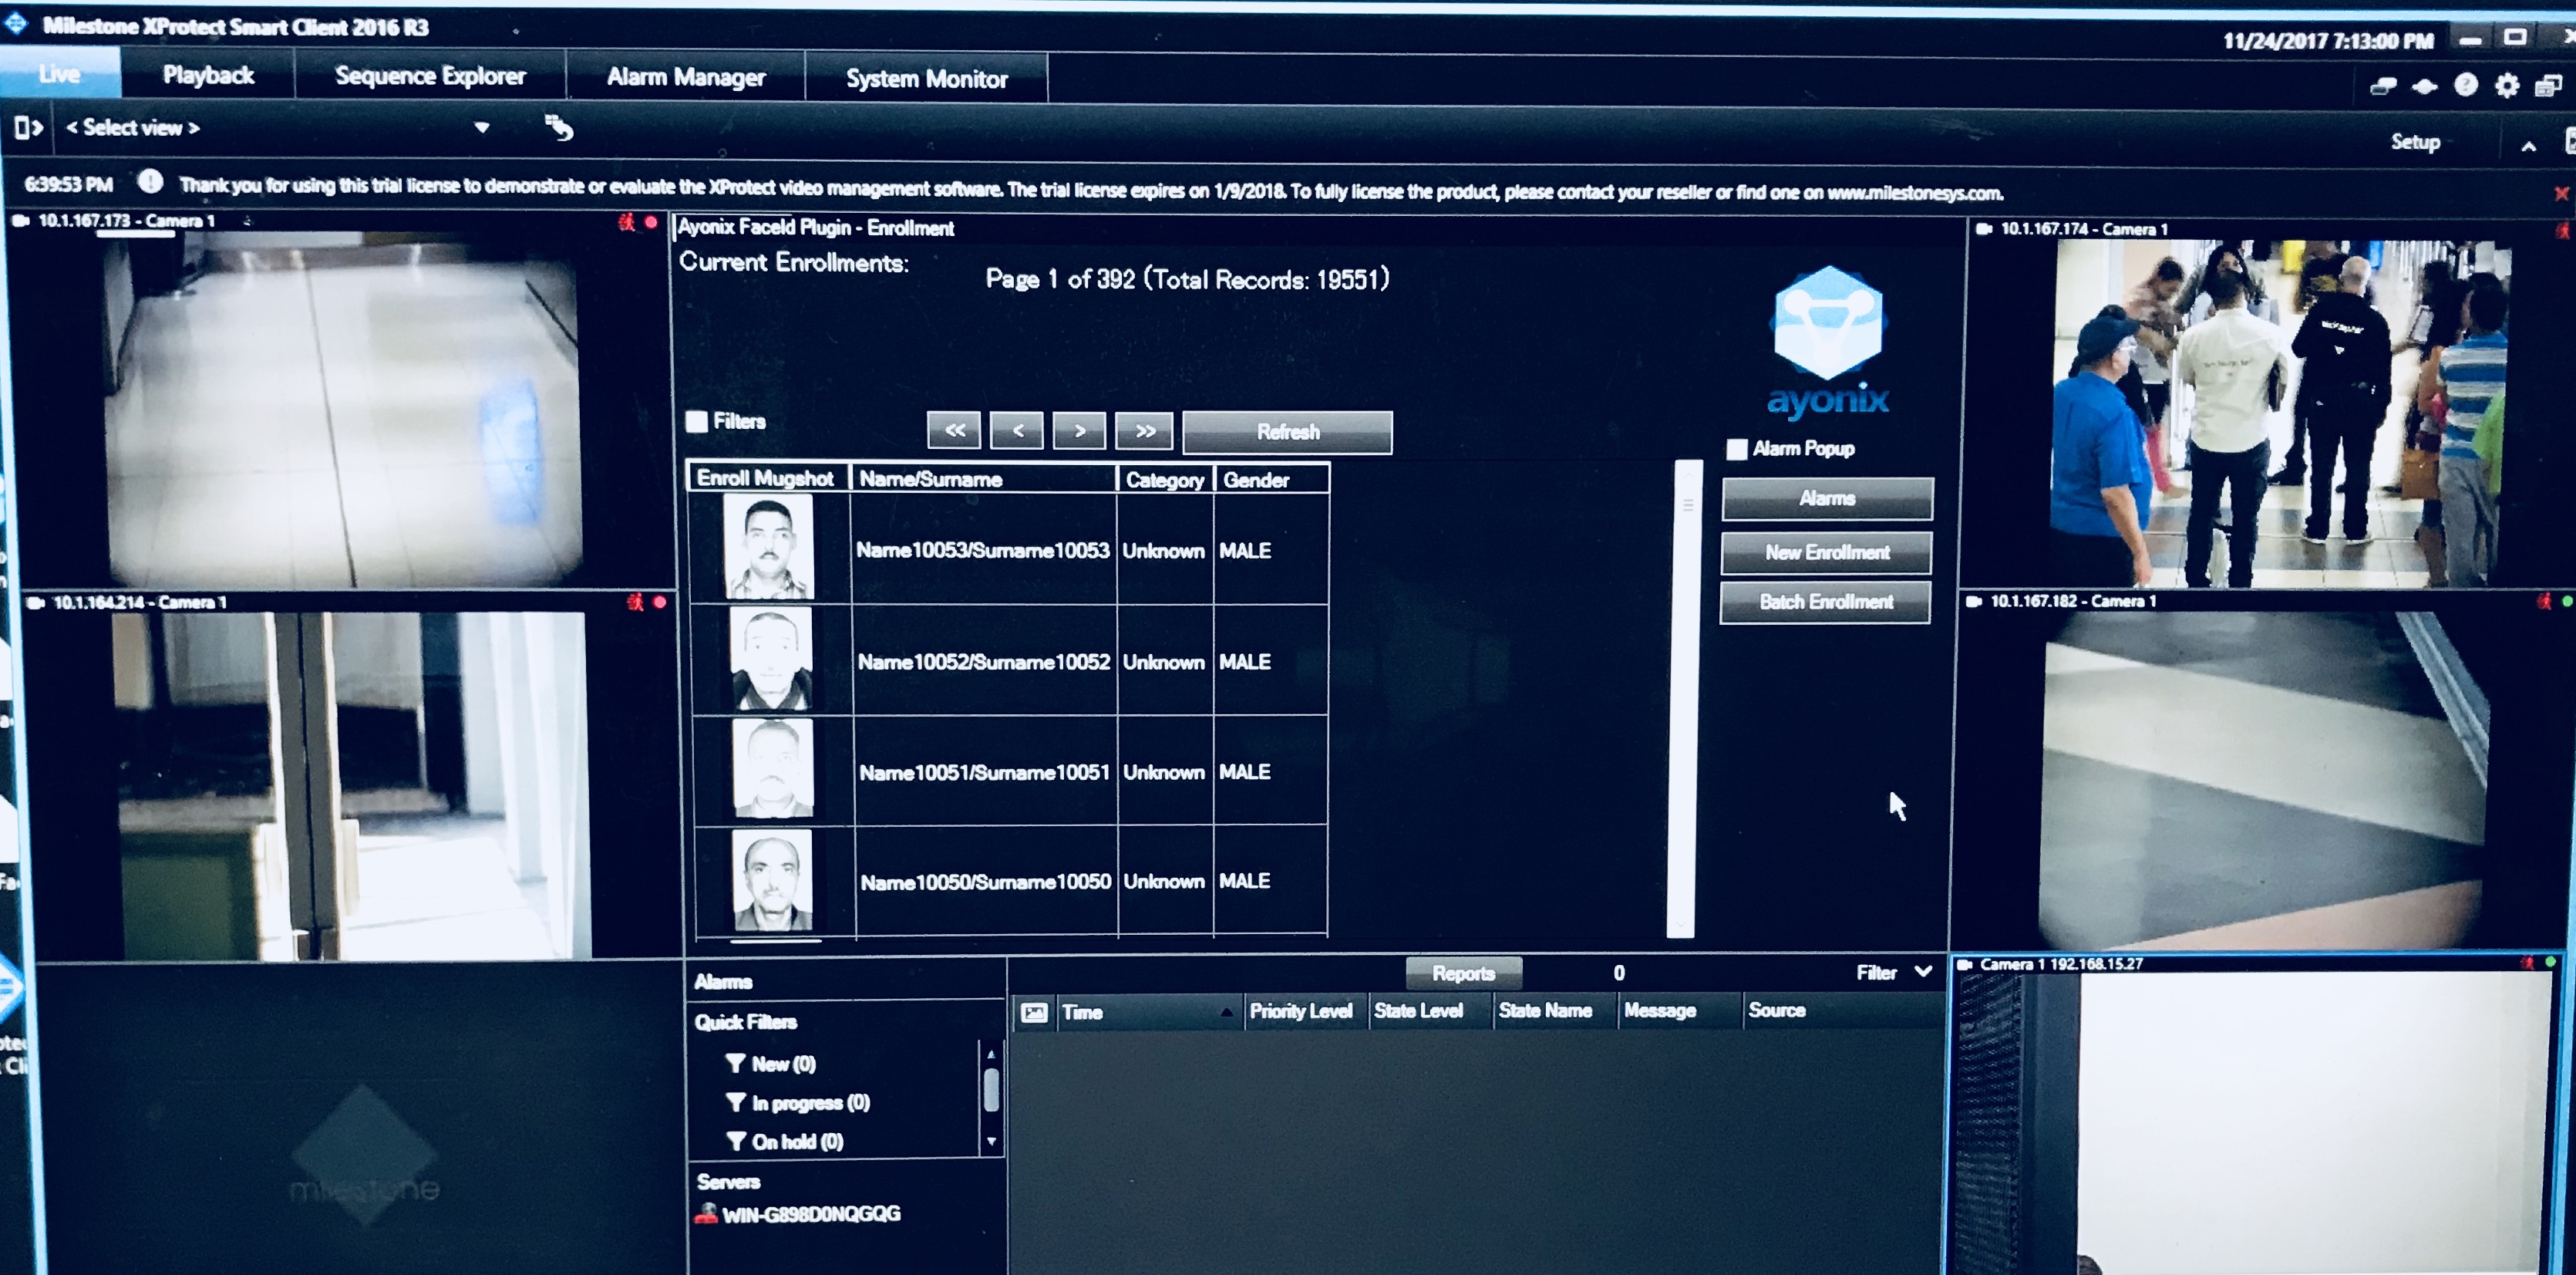 Face Recognition in the XProtect® Smart Client Main Window